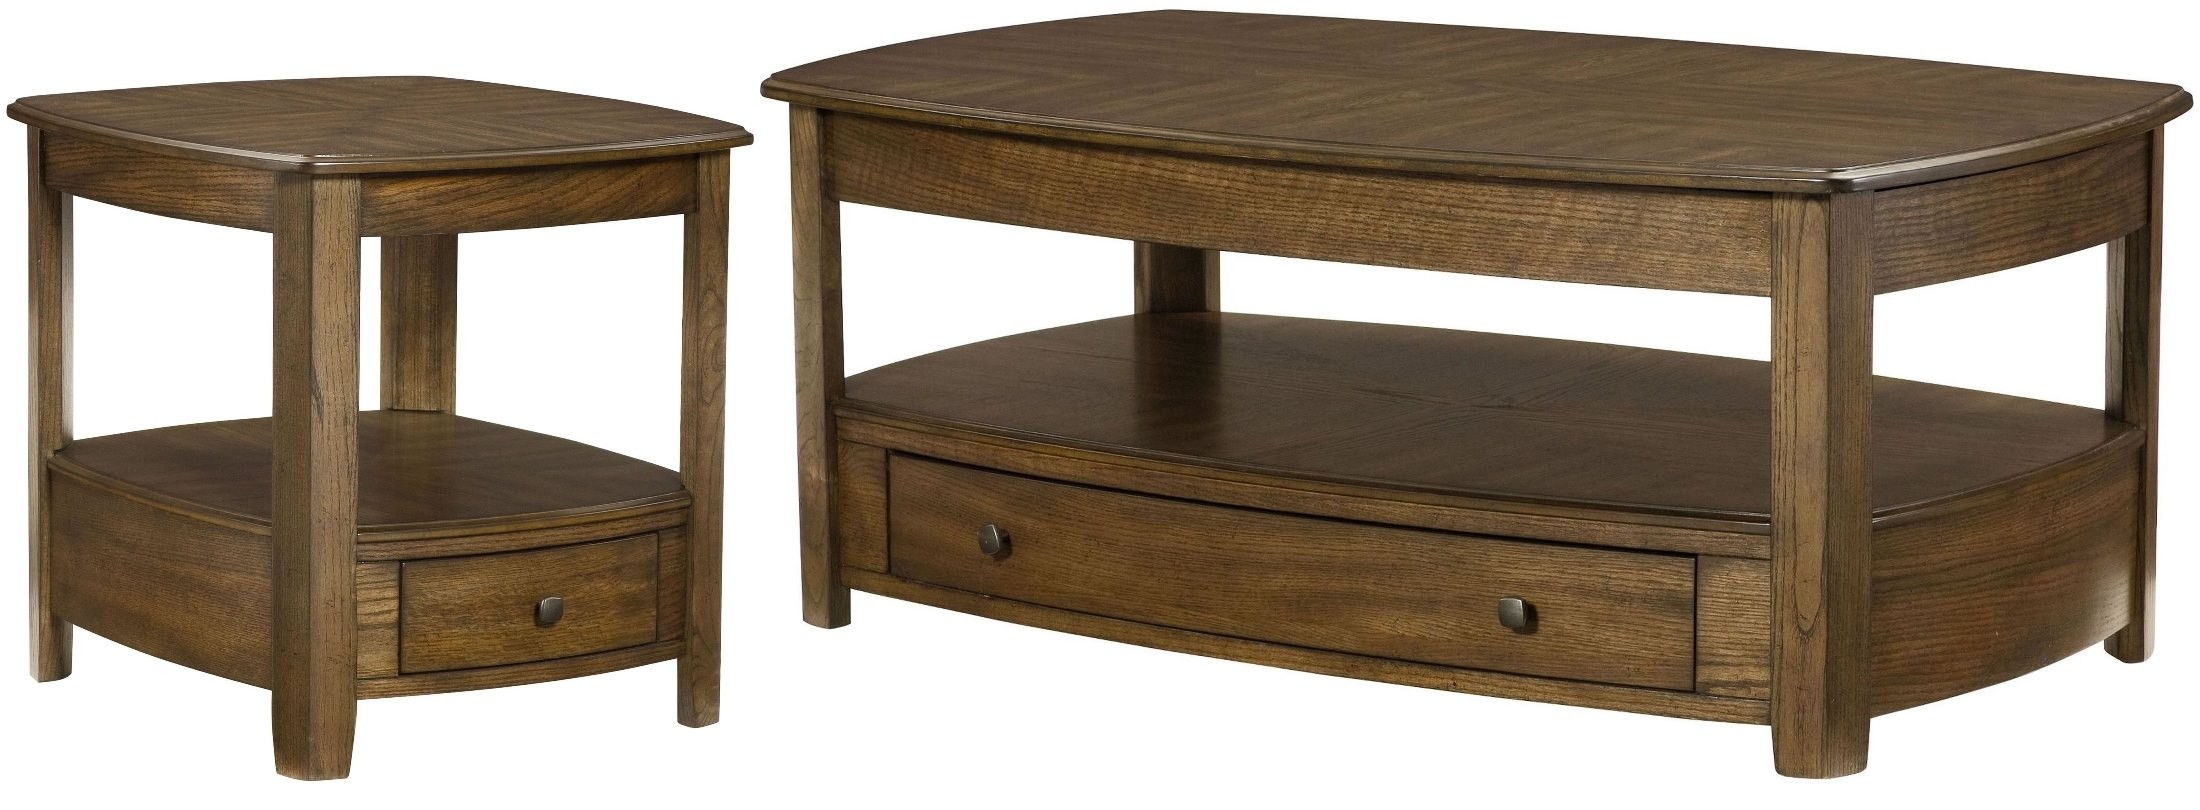 Primo Rectangular Occasional Table Set From Hammary 446